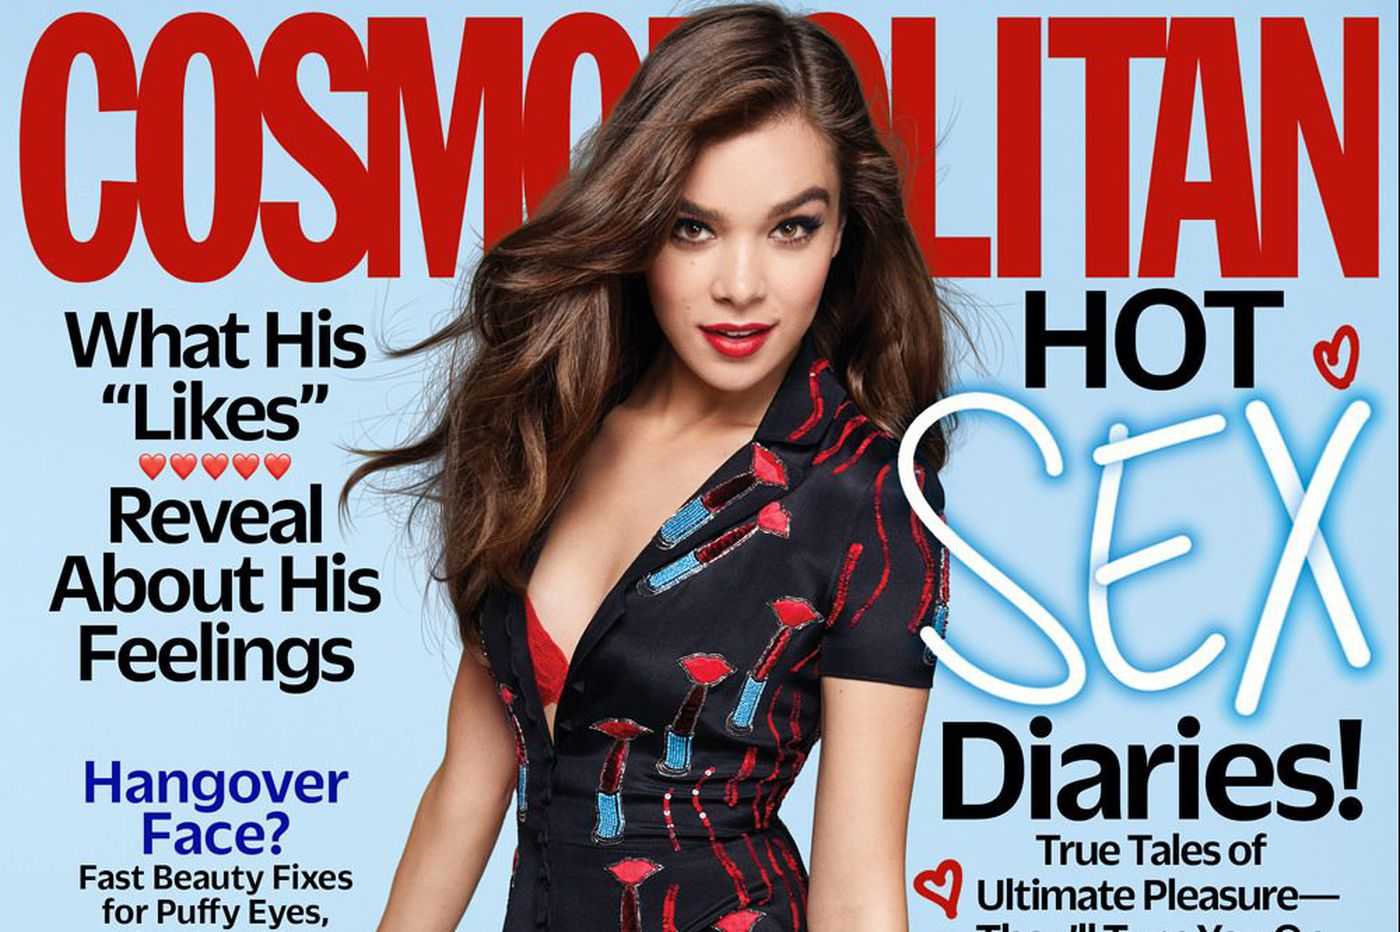 Walmart's decision to take Cosmo off its checkout line is a smack in the face to the #MeToo movement